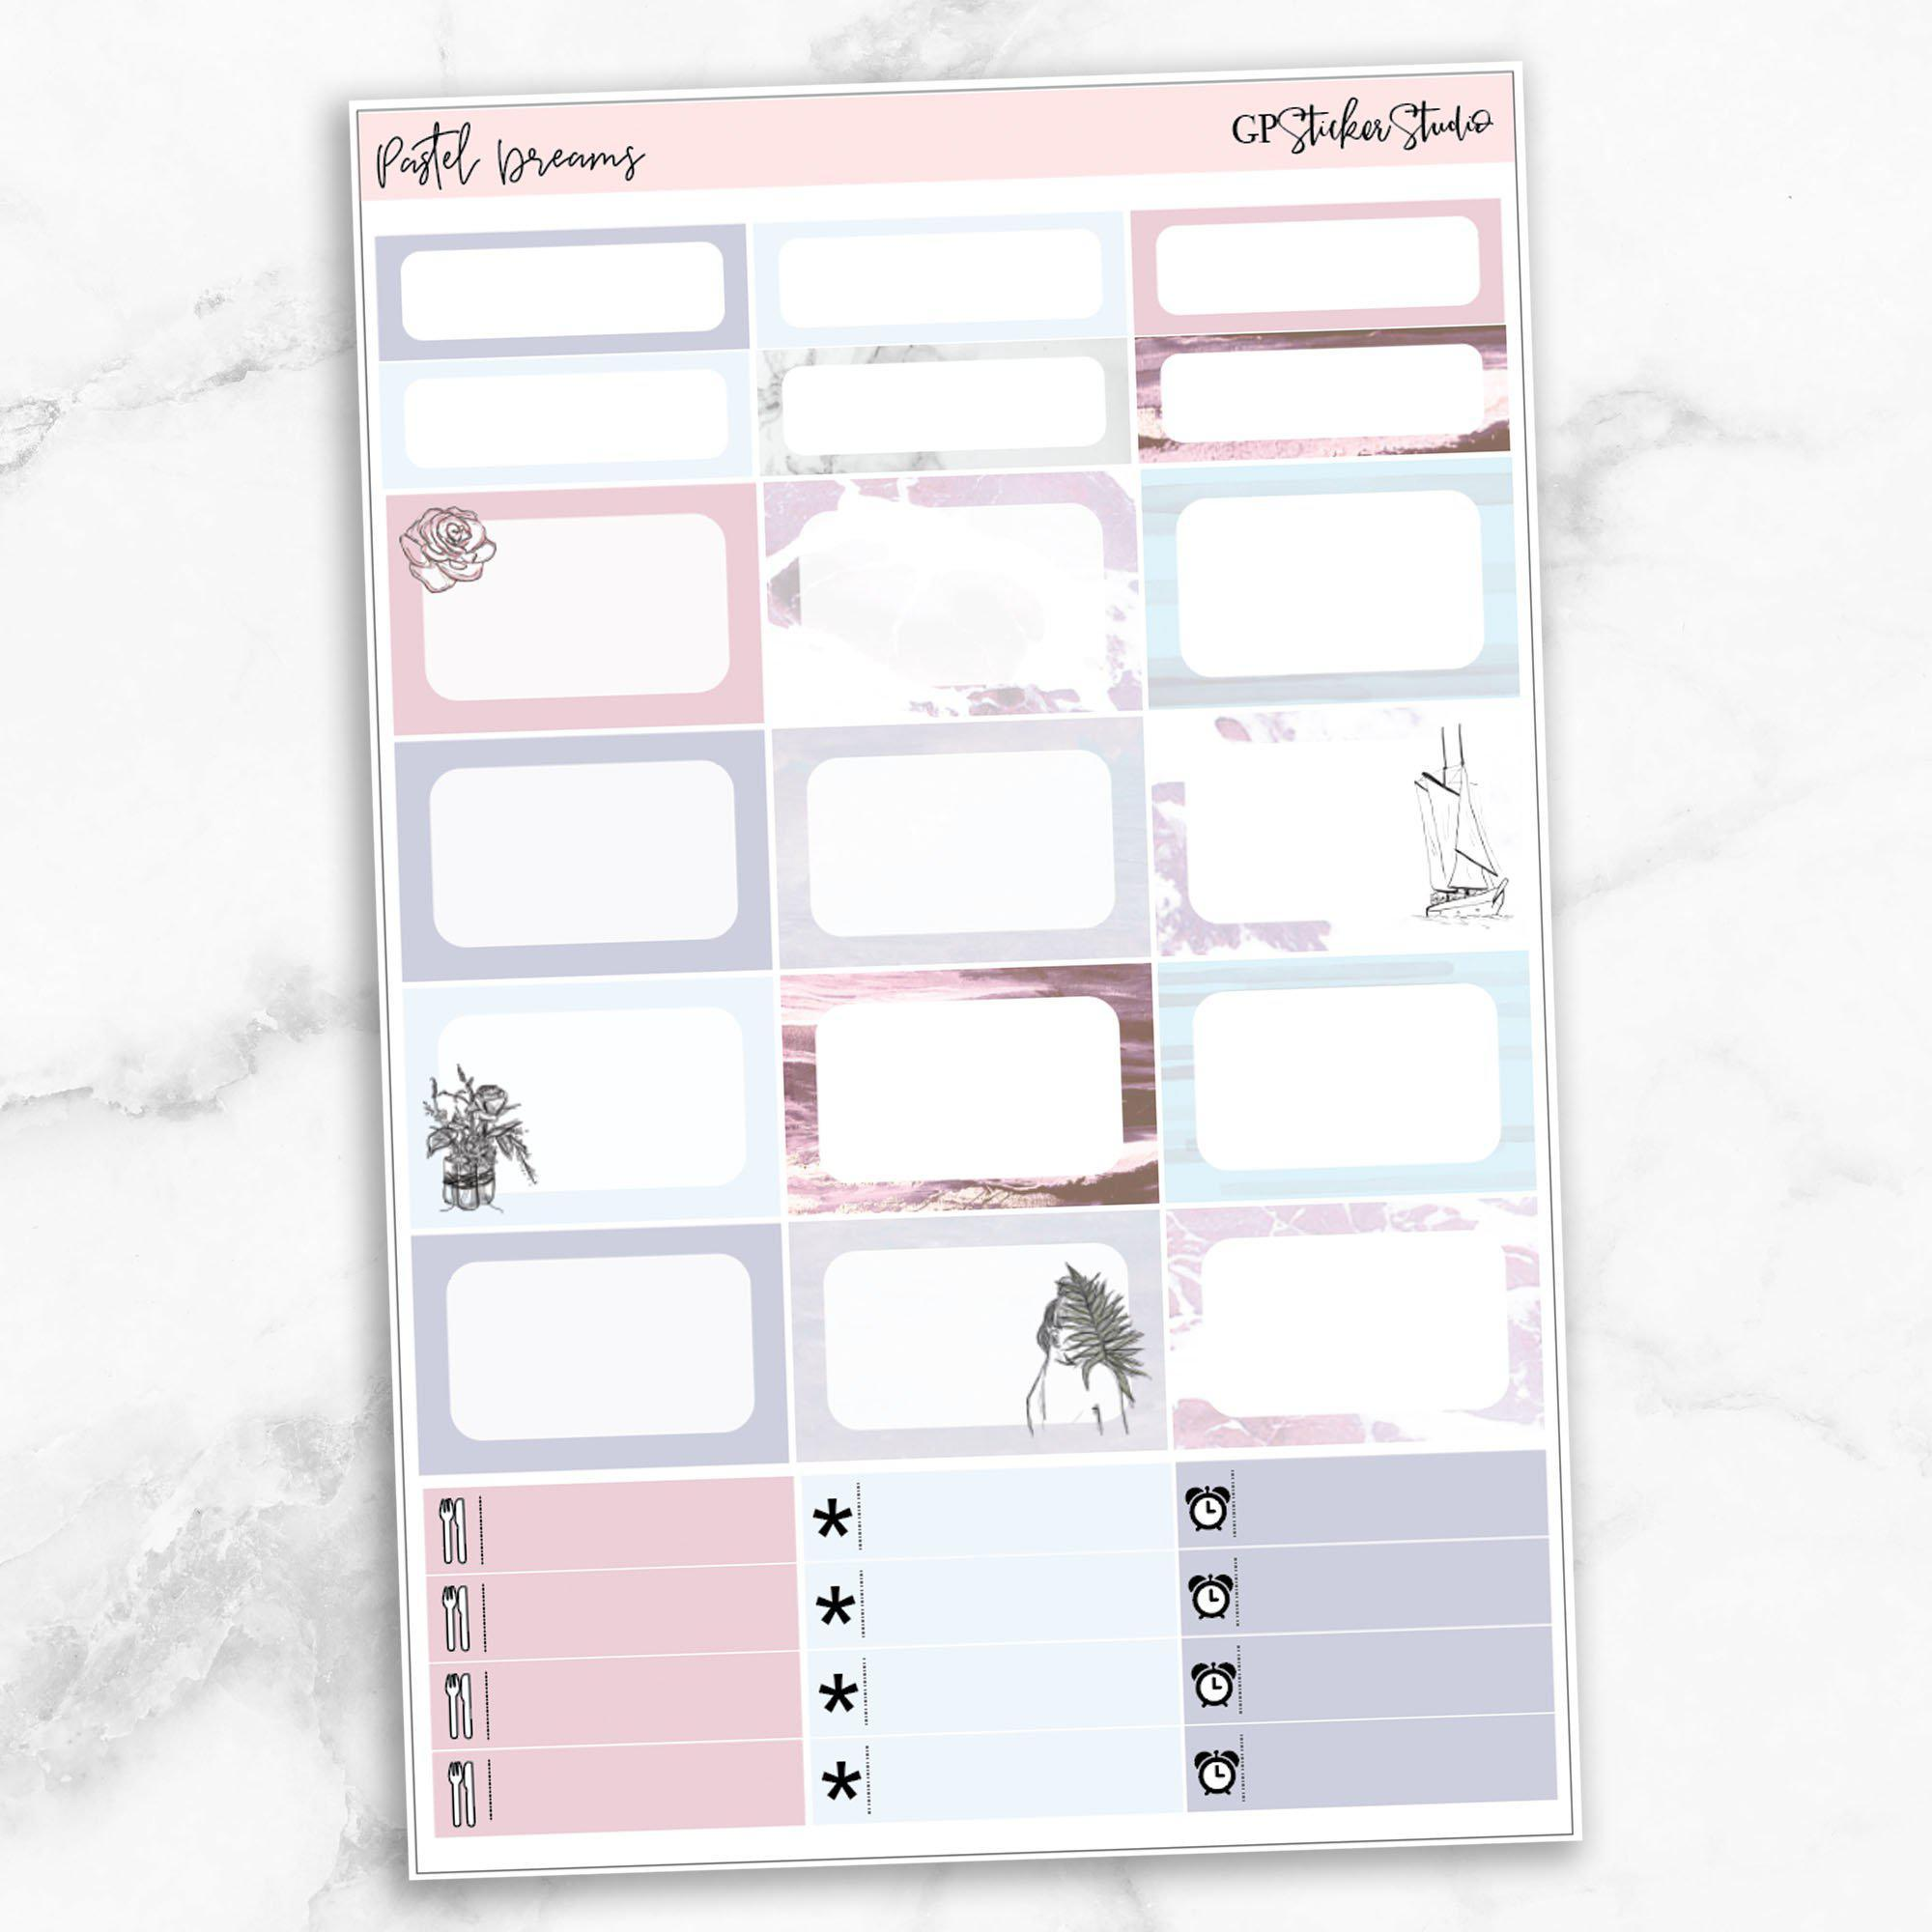 PASTEL DREAMS Half Boxes Planner Stickers-The GP Studio